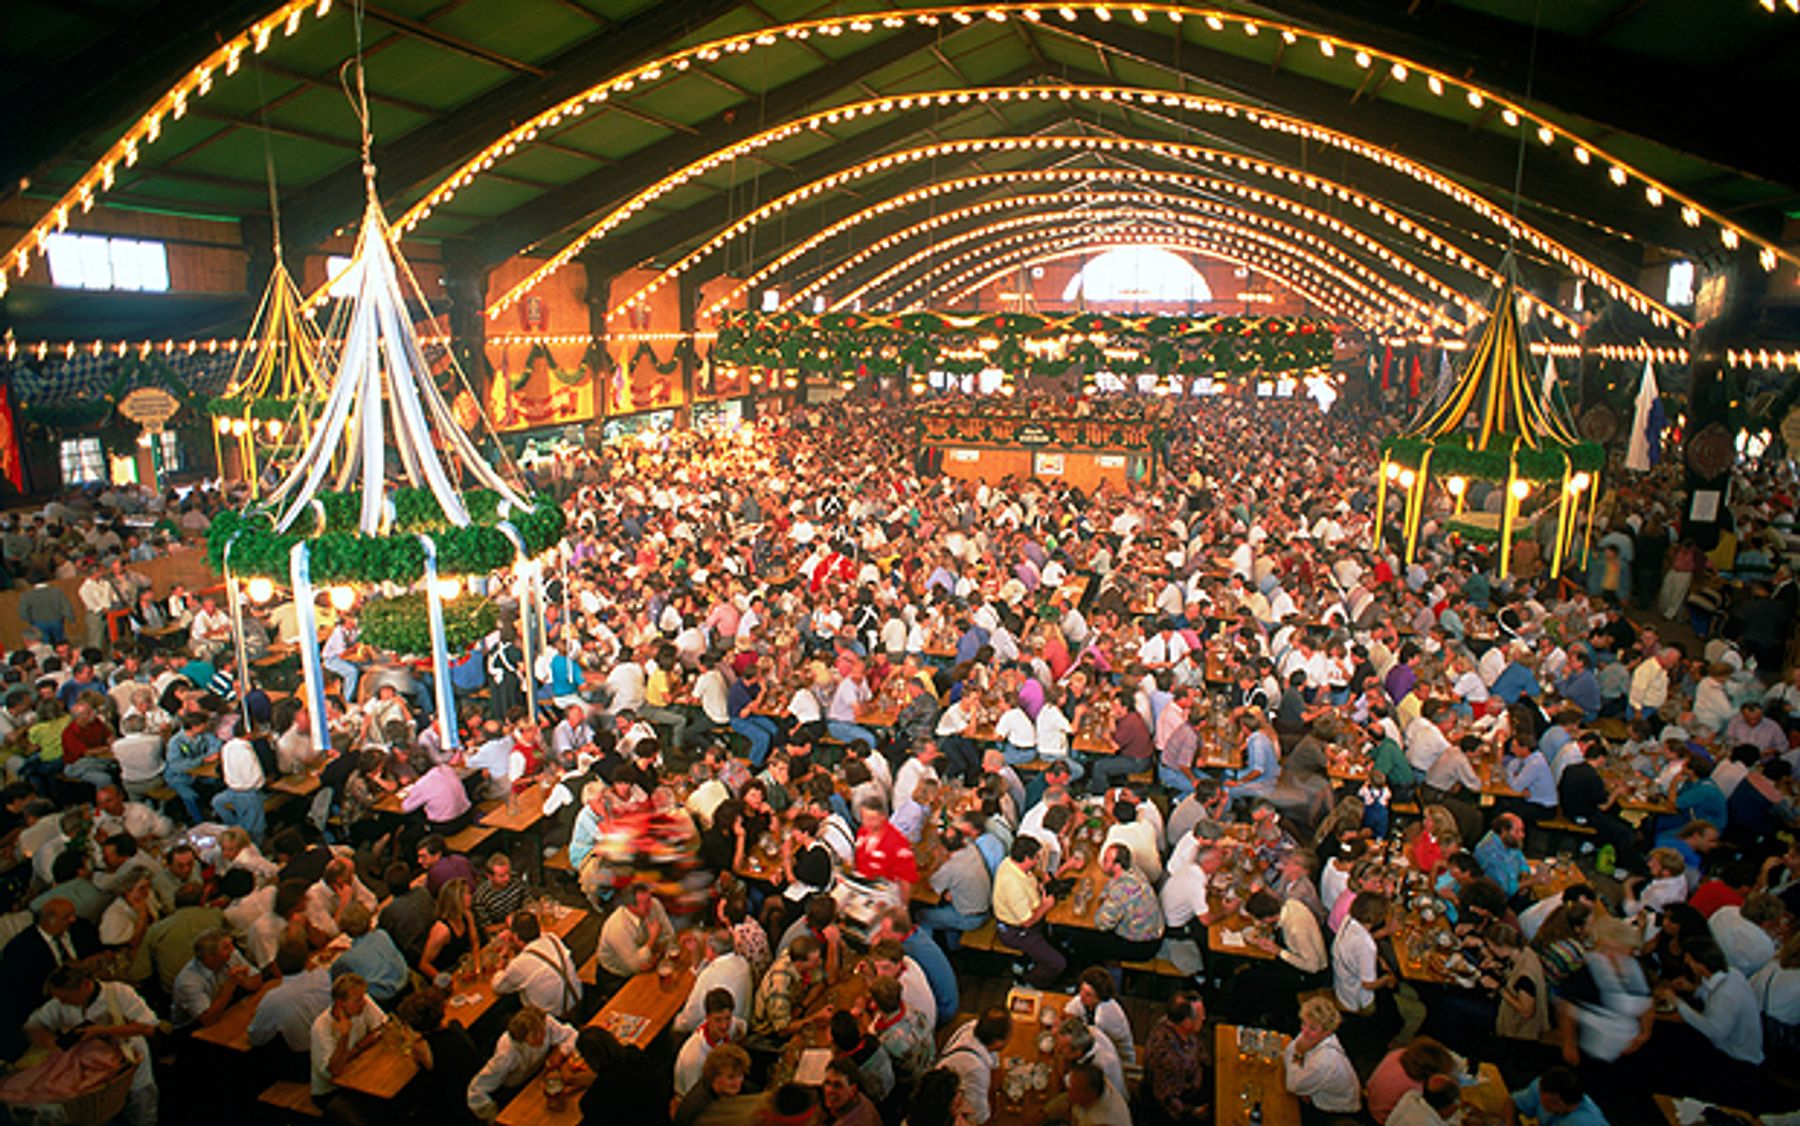 Top 10 Best Beer Tents At Oktoberfest In Munich Hofbräuhaus Tent & Best Oktoberfest Tents - Best Tent 2018